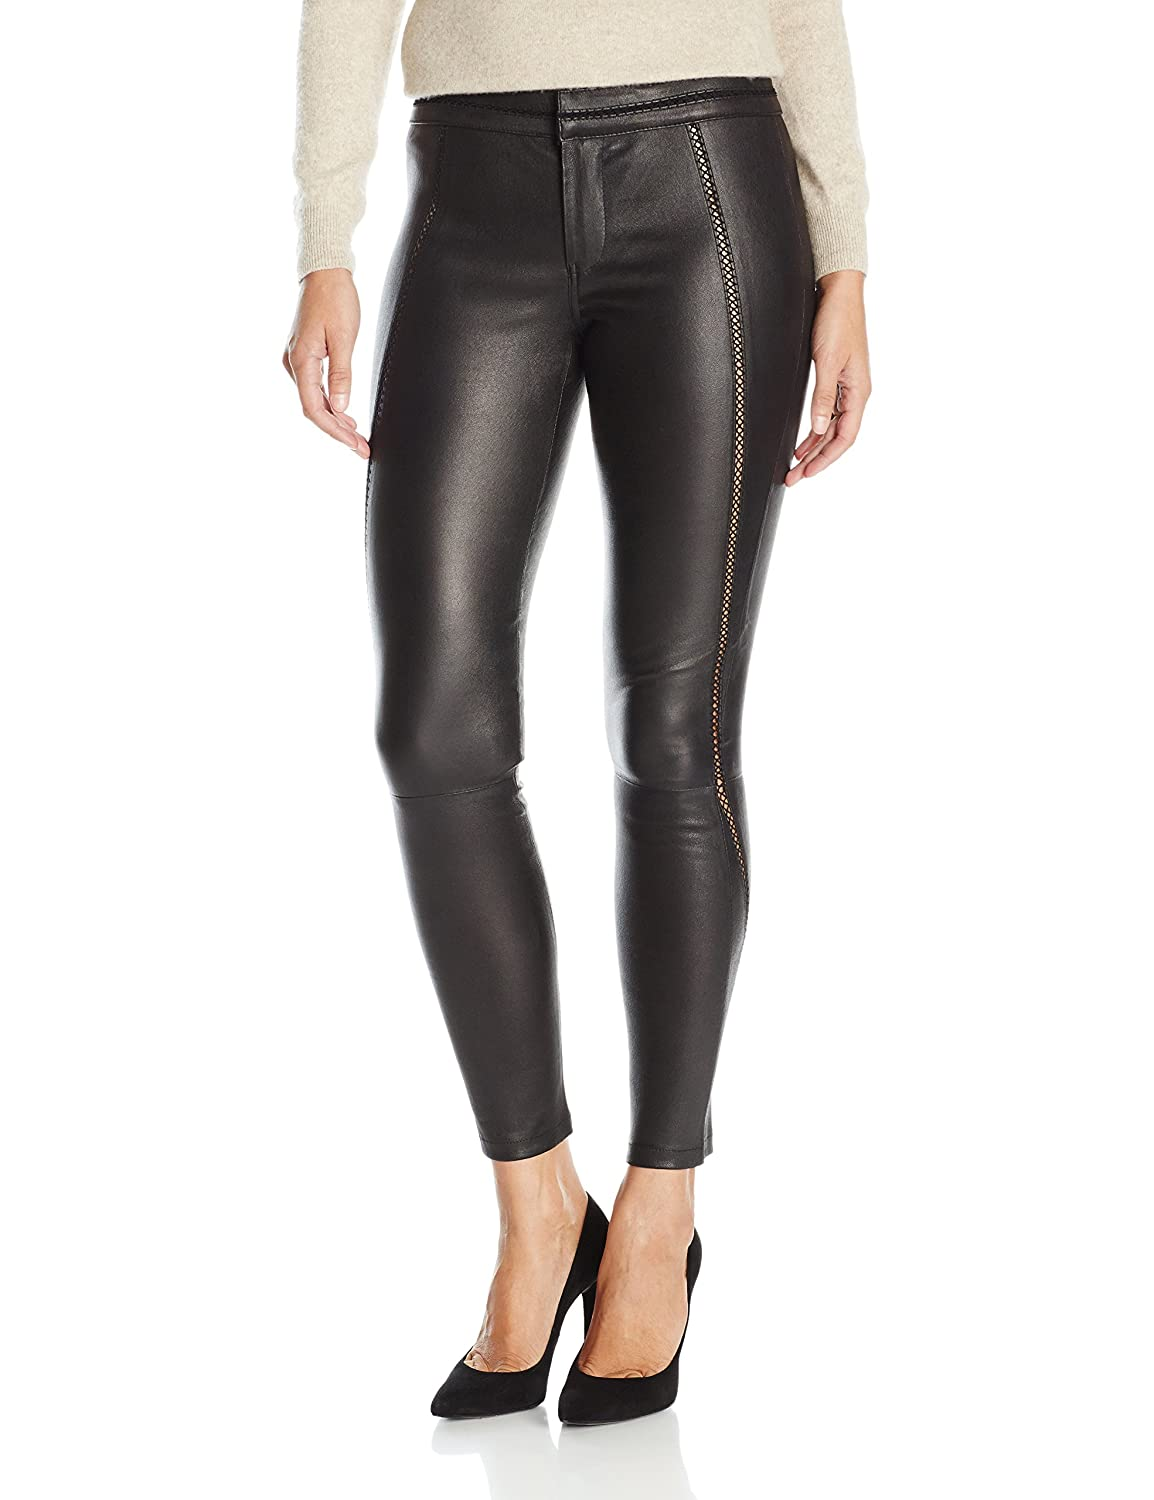 8c7a094ad6dcc Amazon.com: David Lerner Women's Stitched Leather Legging: Clothing